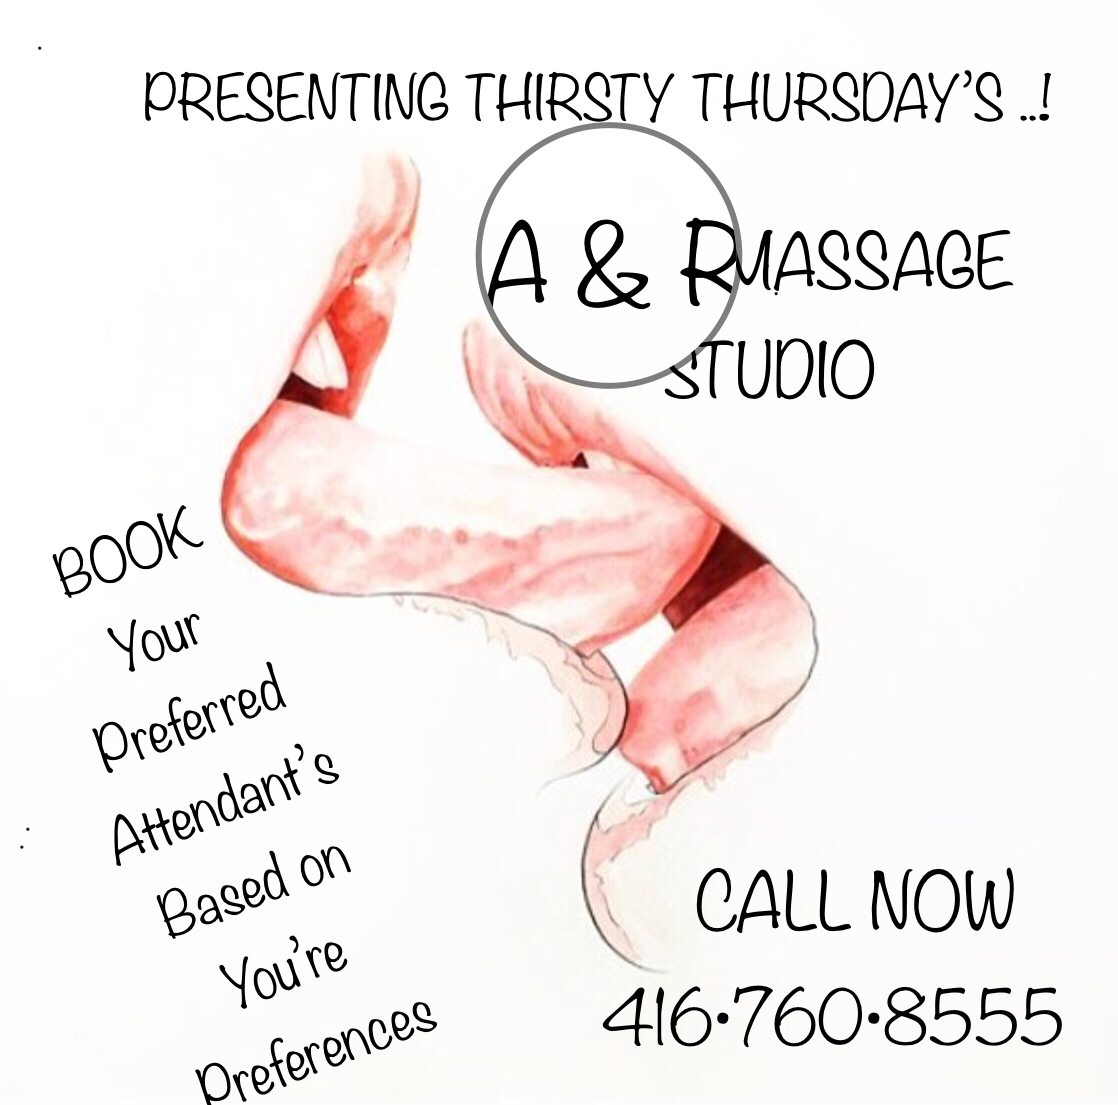 ★THIRSTY-THURSDAYS ★EROTIC ★FOREPLAY★GFE★MASSAGE★OR•LITTLE MORE★•INTENSITY★★GTA★★OUR WILD ★•NAUGHTY★•SEXY★★*GENTLEMEN'S RETREAT*★★A&R★★416-760-8555★